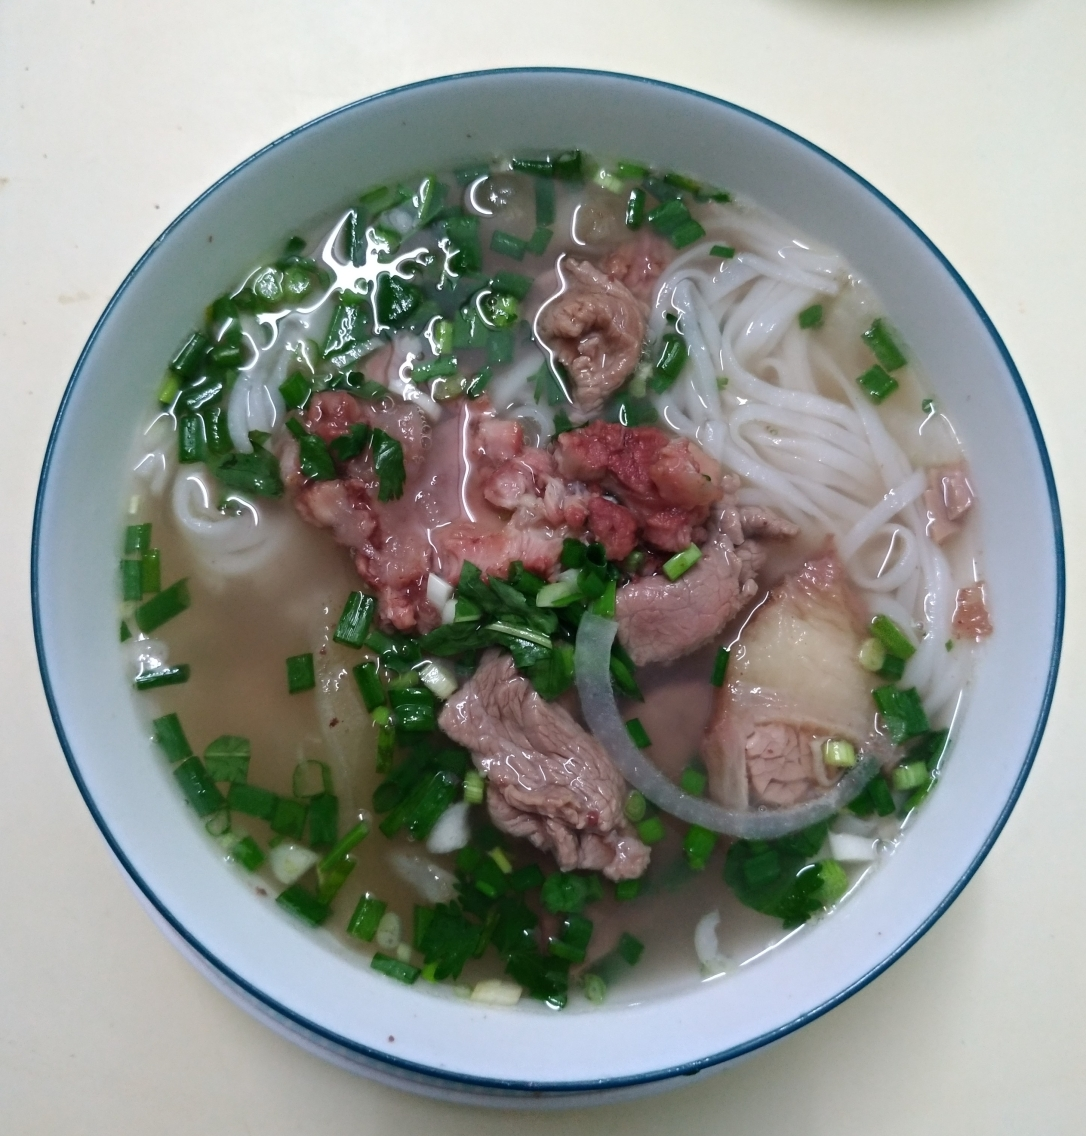 Phở Minh - Phở Everything